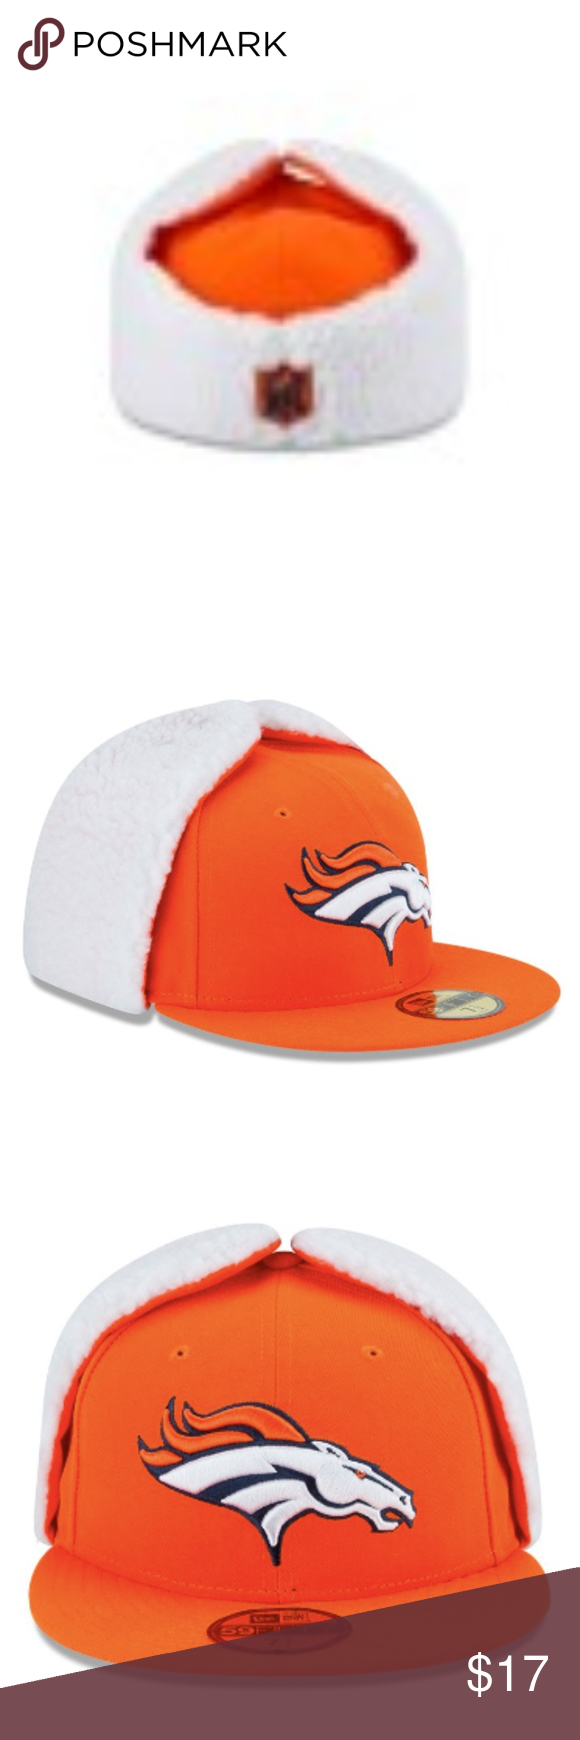 7a36ed5d Denver Broncos Flurry Fit Dog Ear Fitted Hat Brand New Officially ...